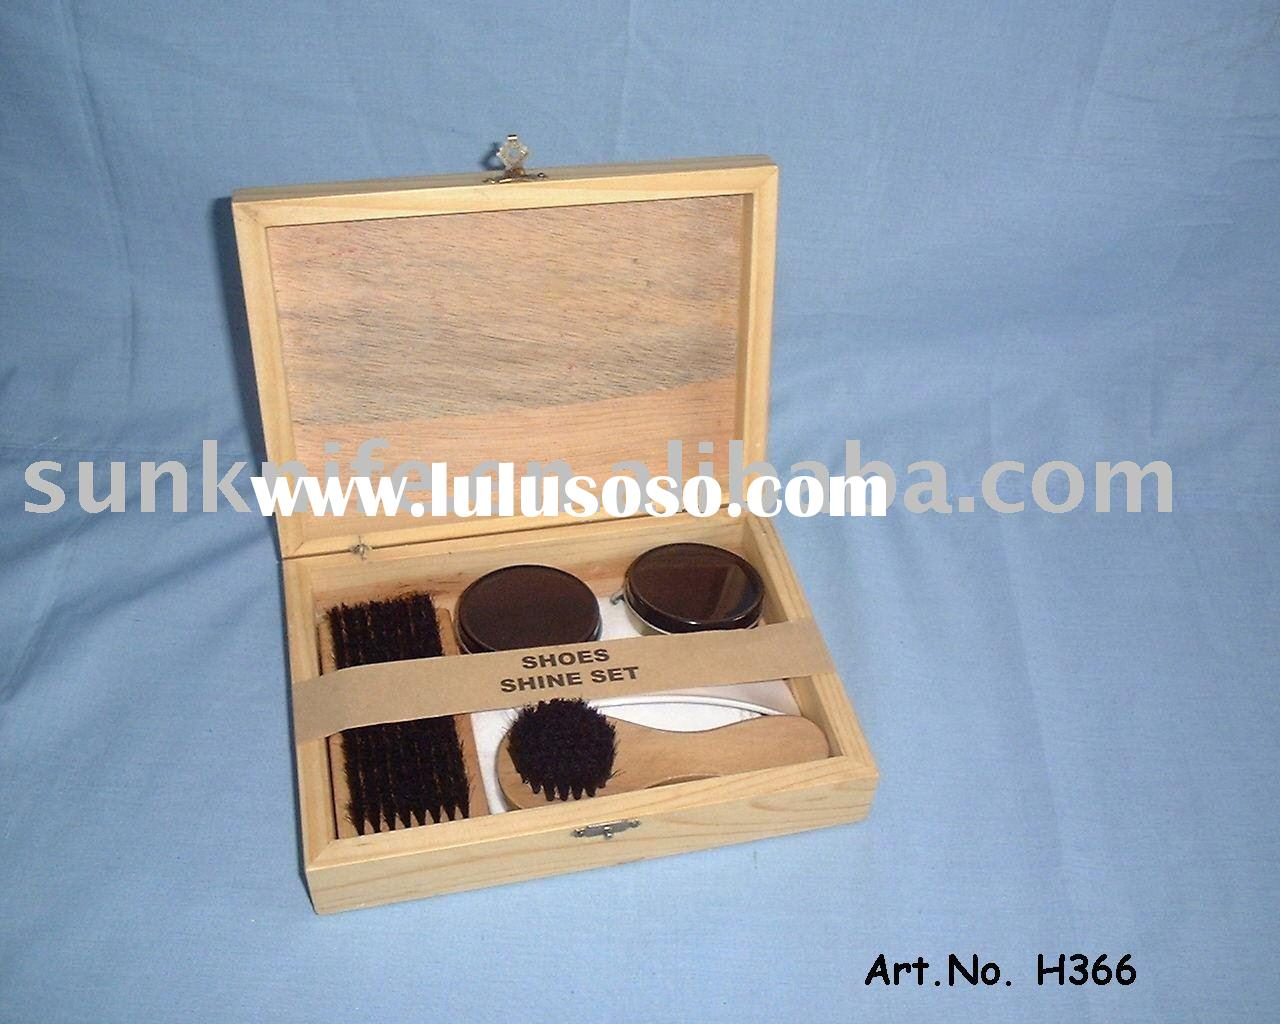 shoe shine kit with wooden case